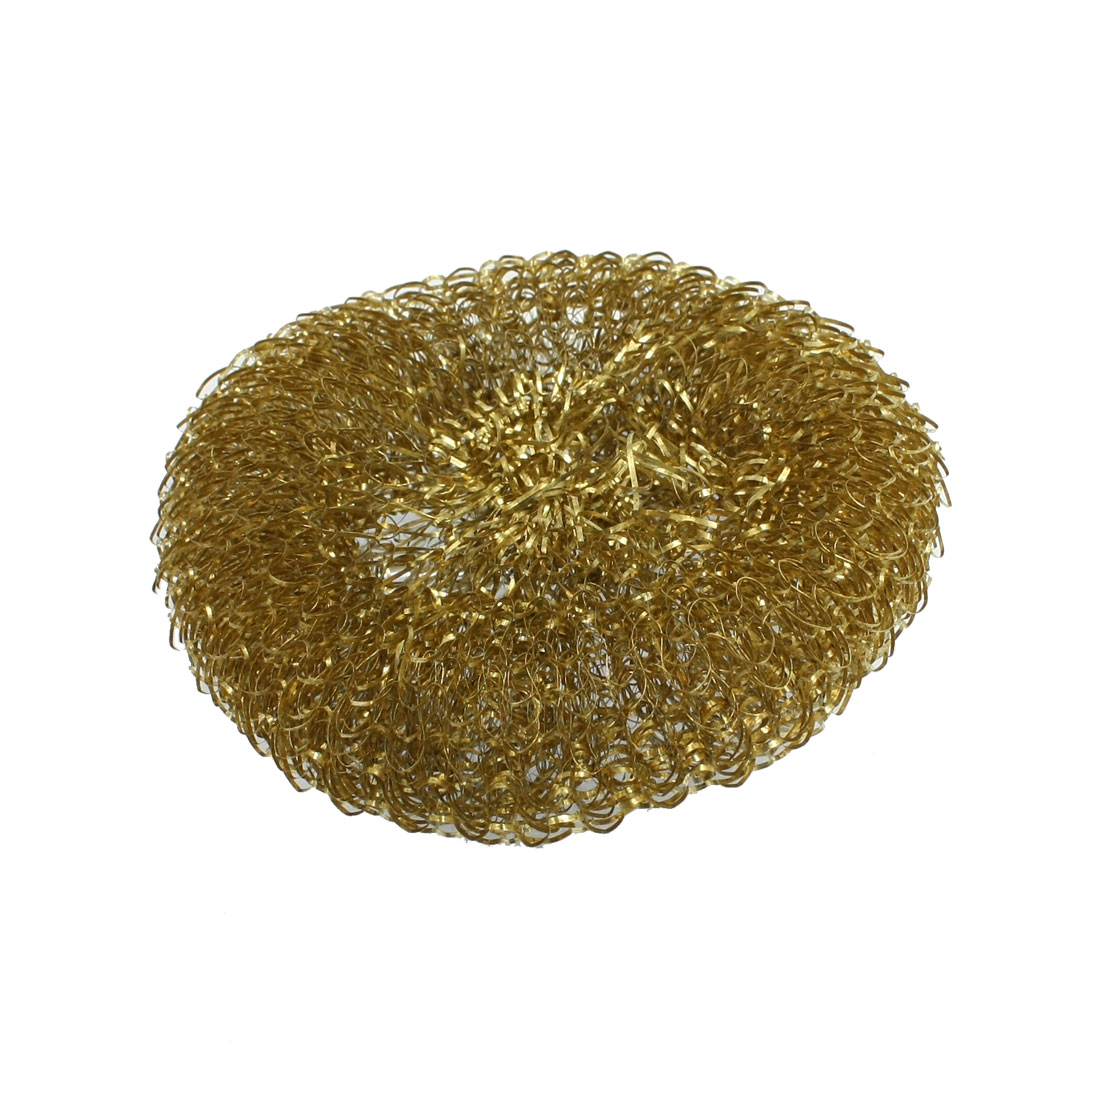 Soldering Solder Iron Tip Machine Brass Spiral Scourer Cleaning Ball